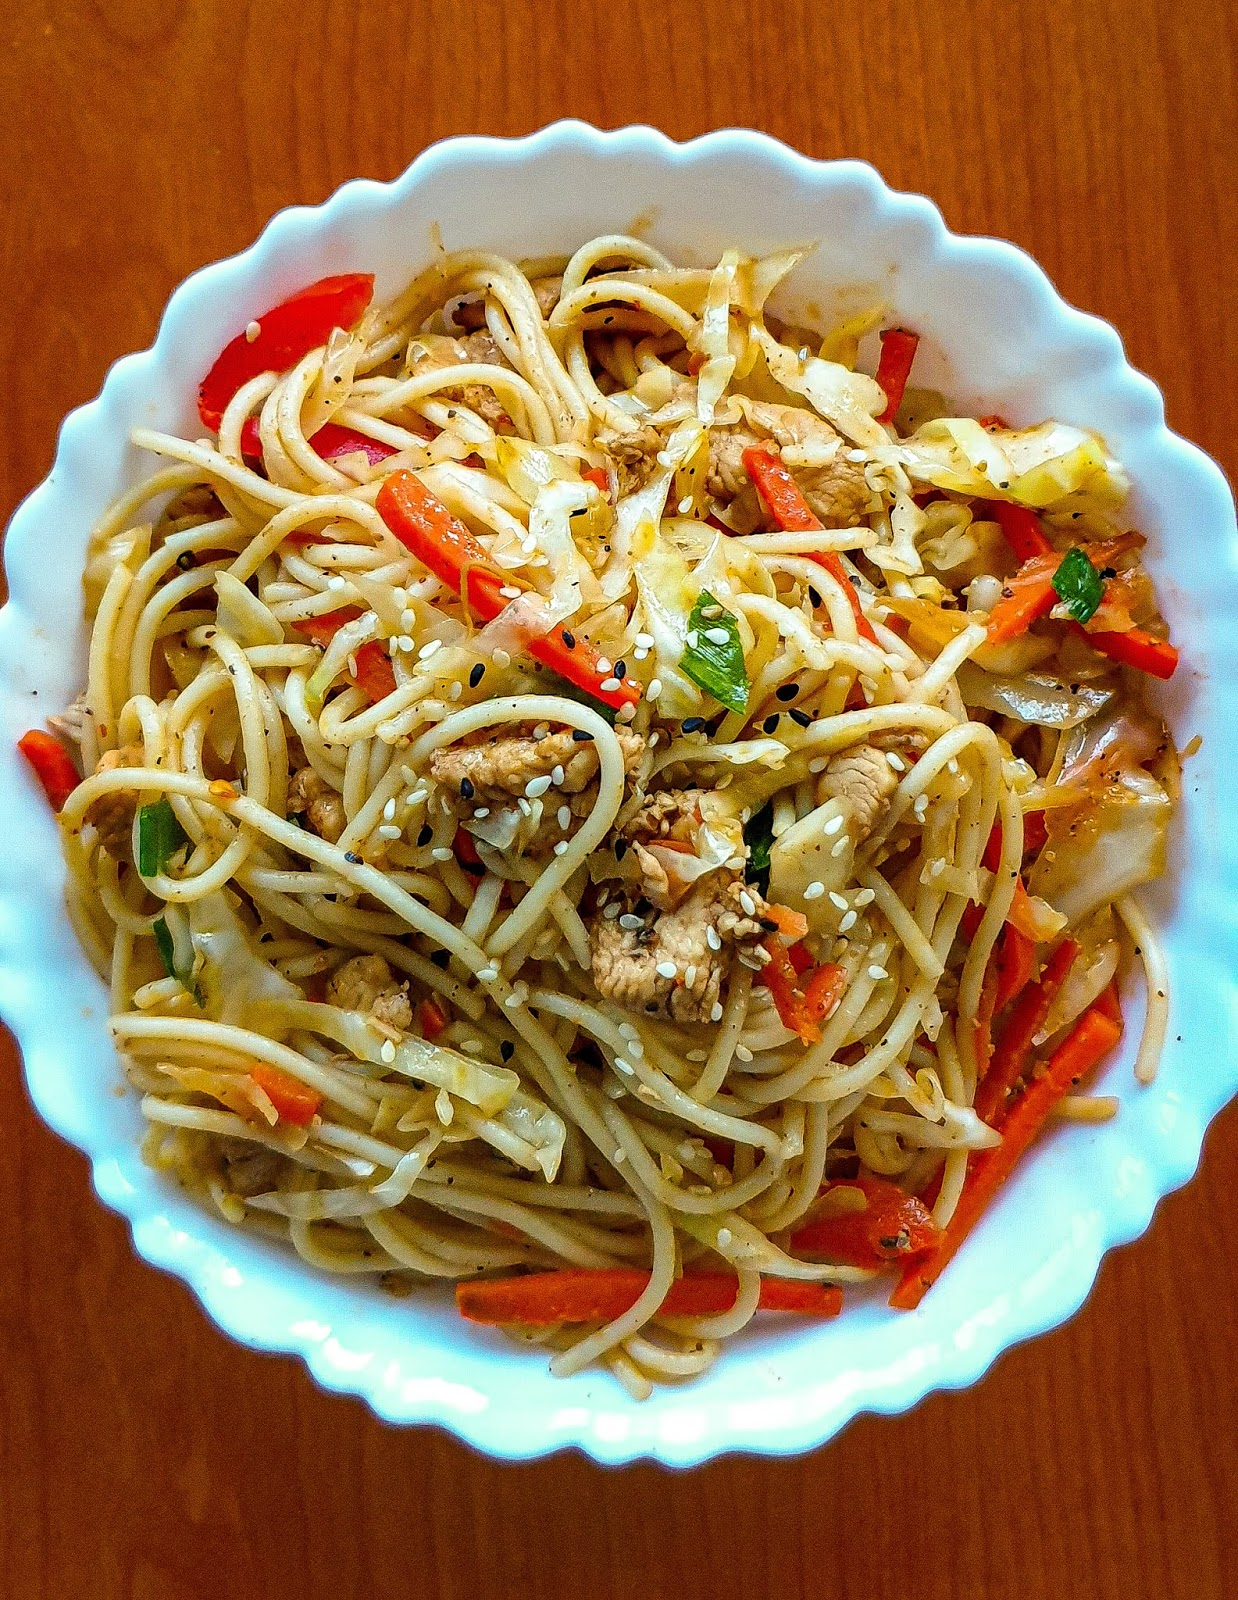 stir fried chicken and veggies spaghetti